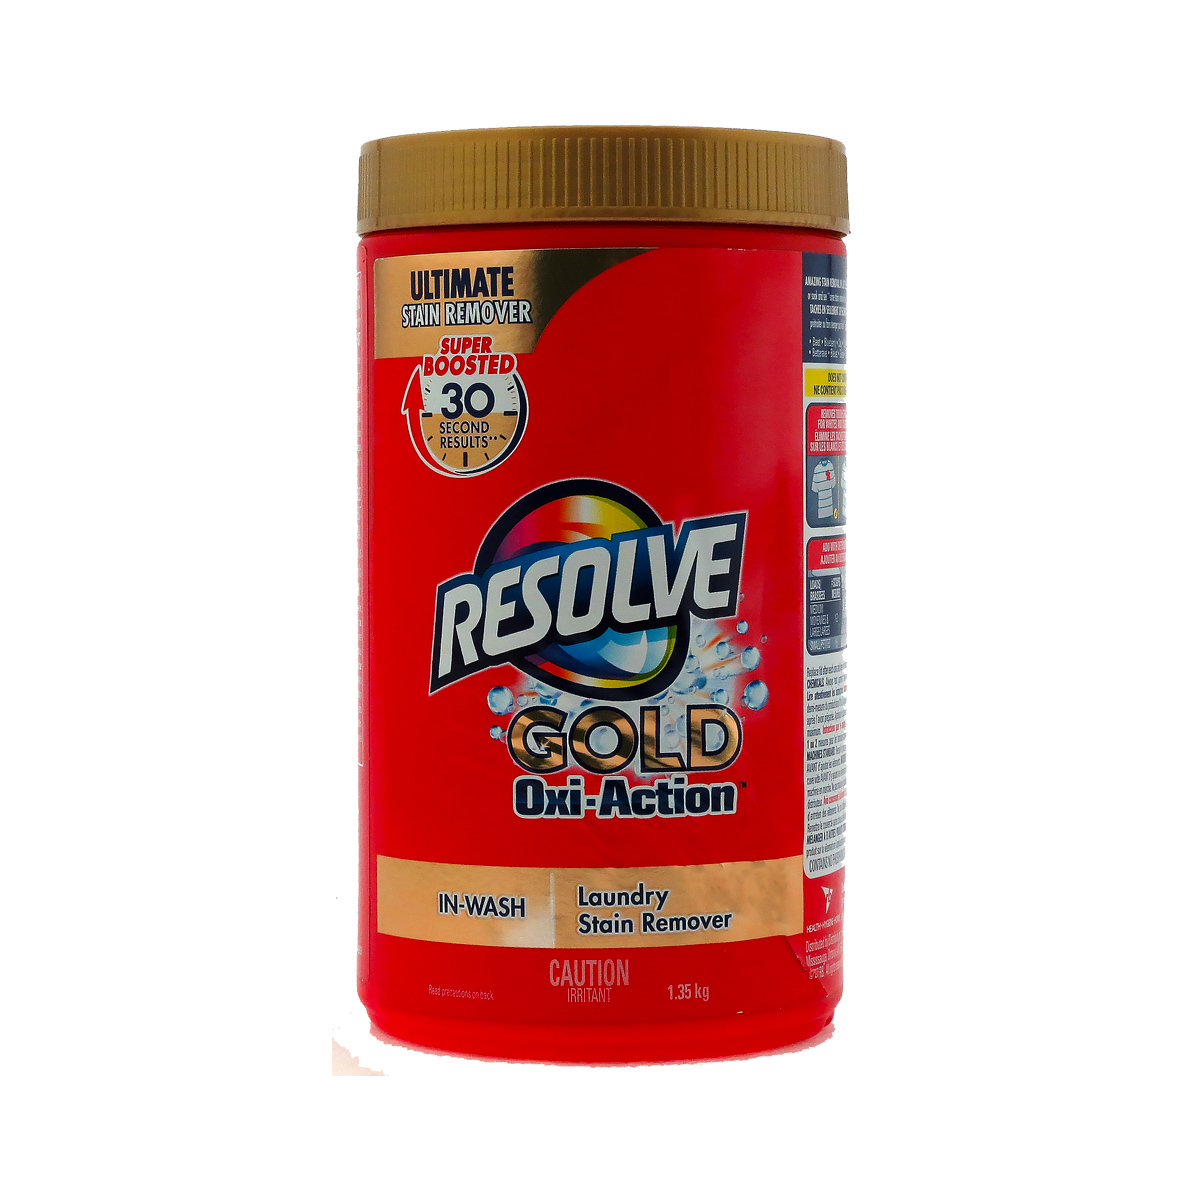 Resolve Laundry Stain Remover Gold Oxi Action 1 35 Kg